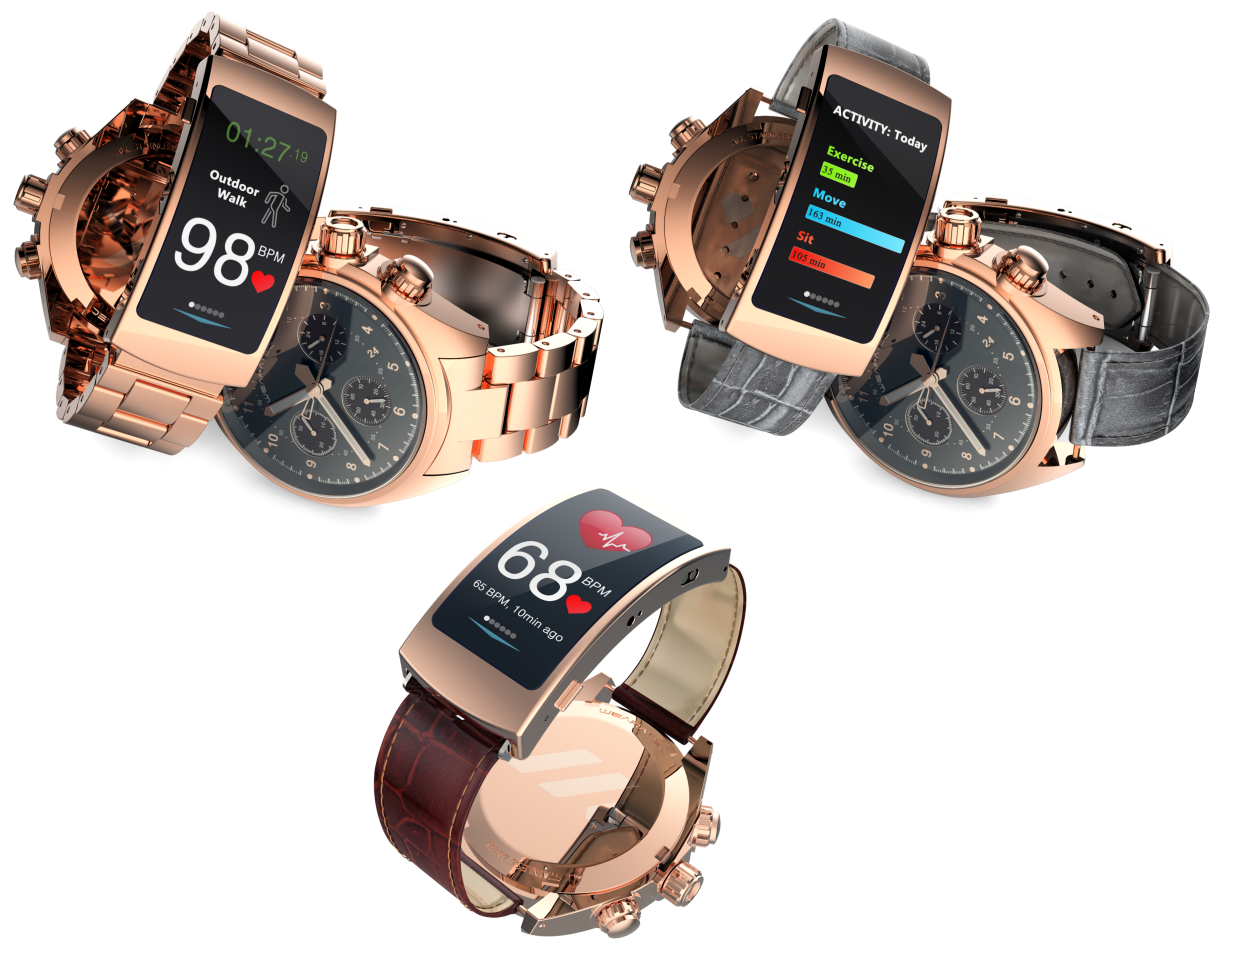 Startup aims to kill the Apple Watch with Swiss luxury